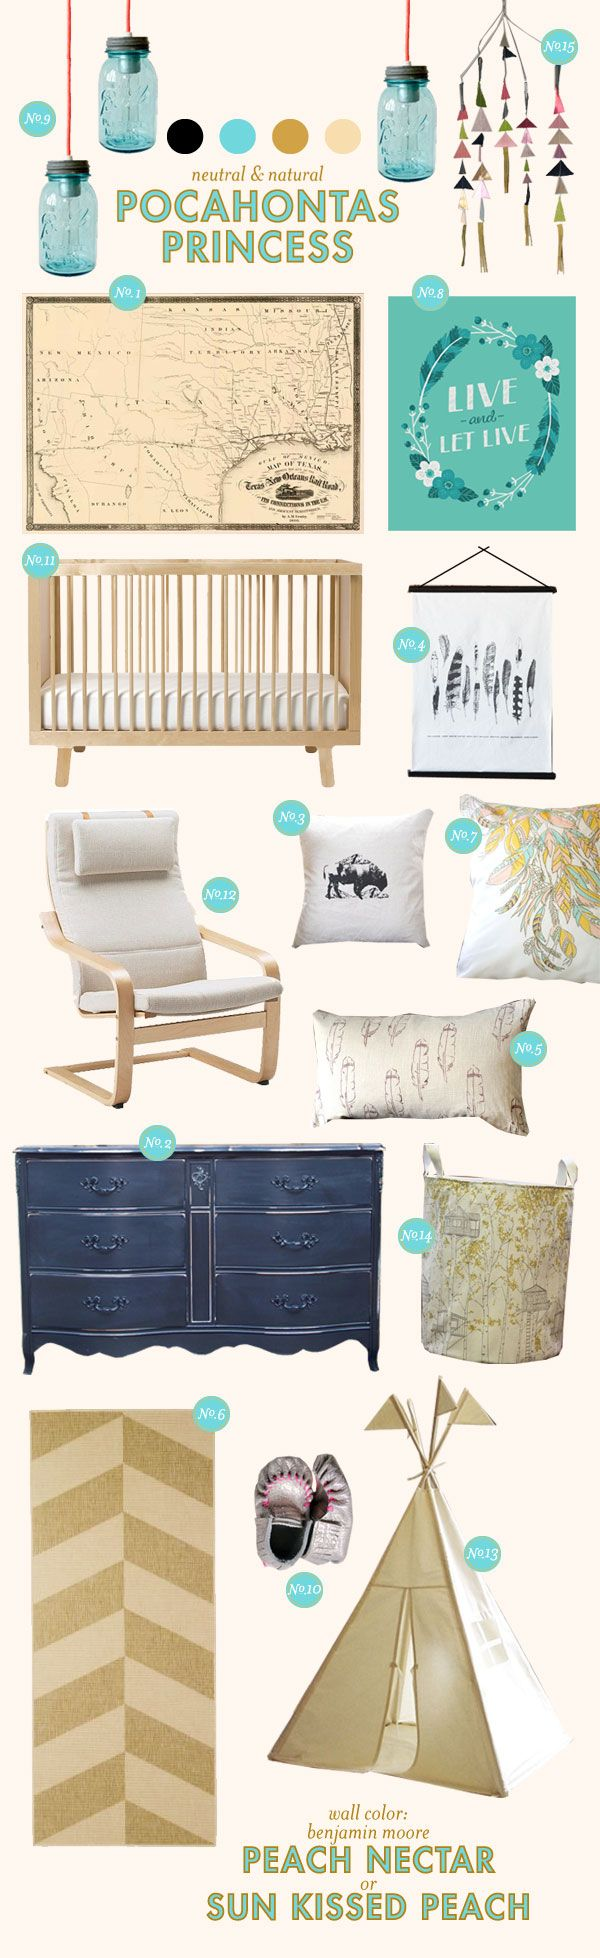 Not sure about the Pocahontas part, but I love the different DIY ideas and the colors for a nursery look